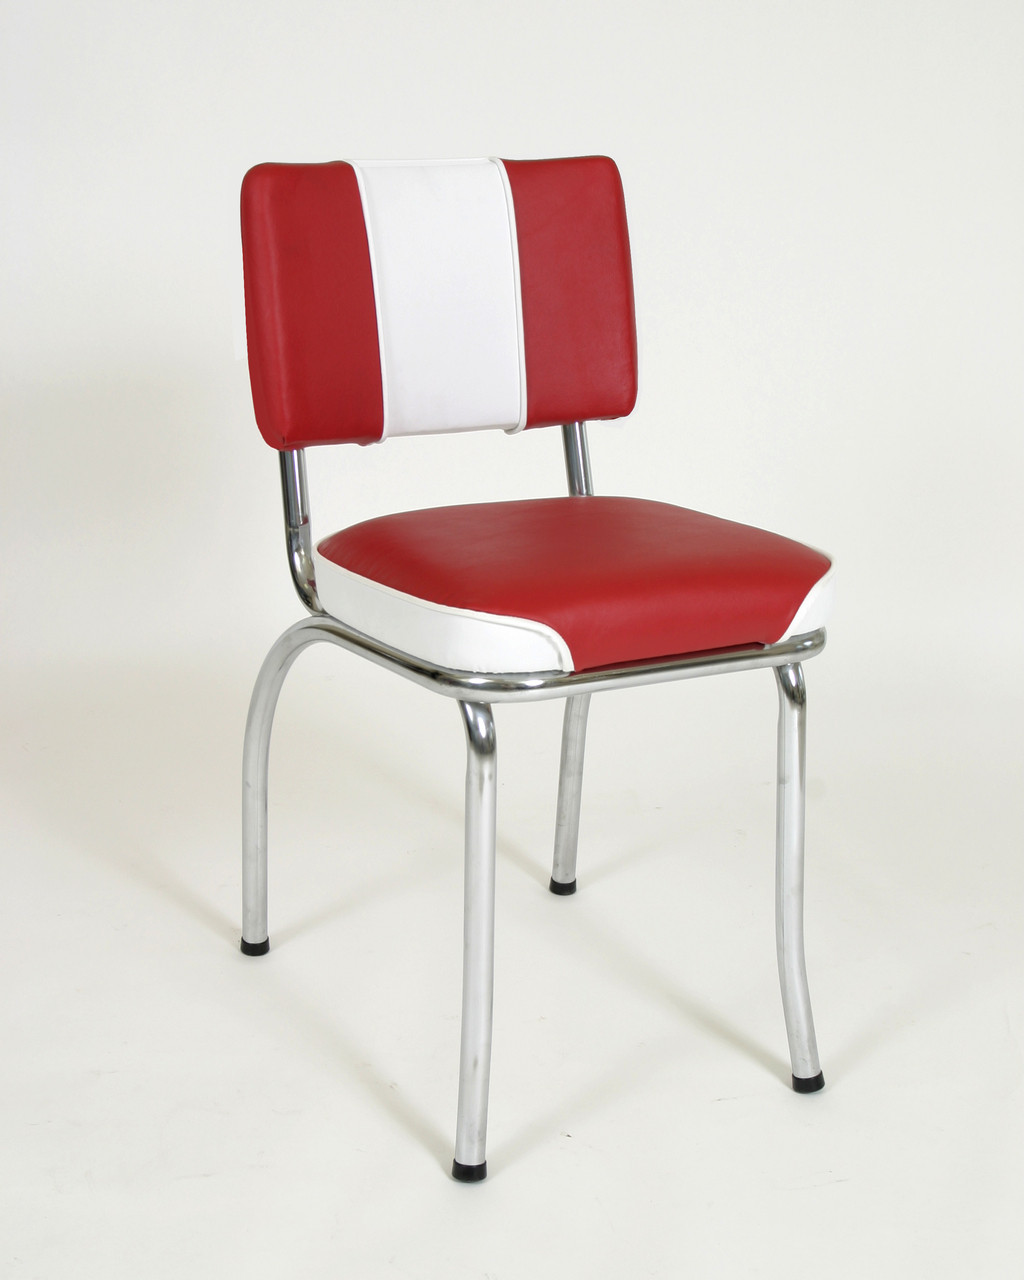 Retro Cushions Classic Two Tone Chair Replacement Seats And Backs From